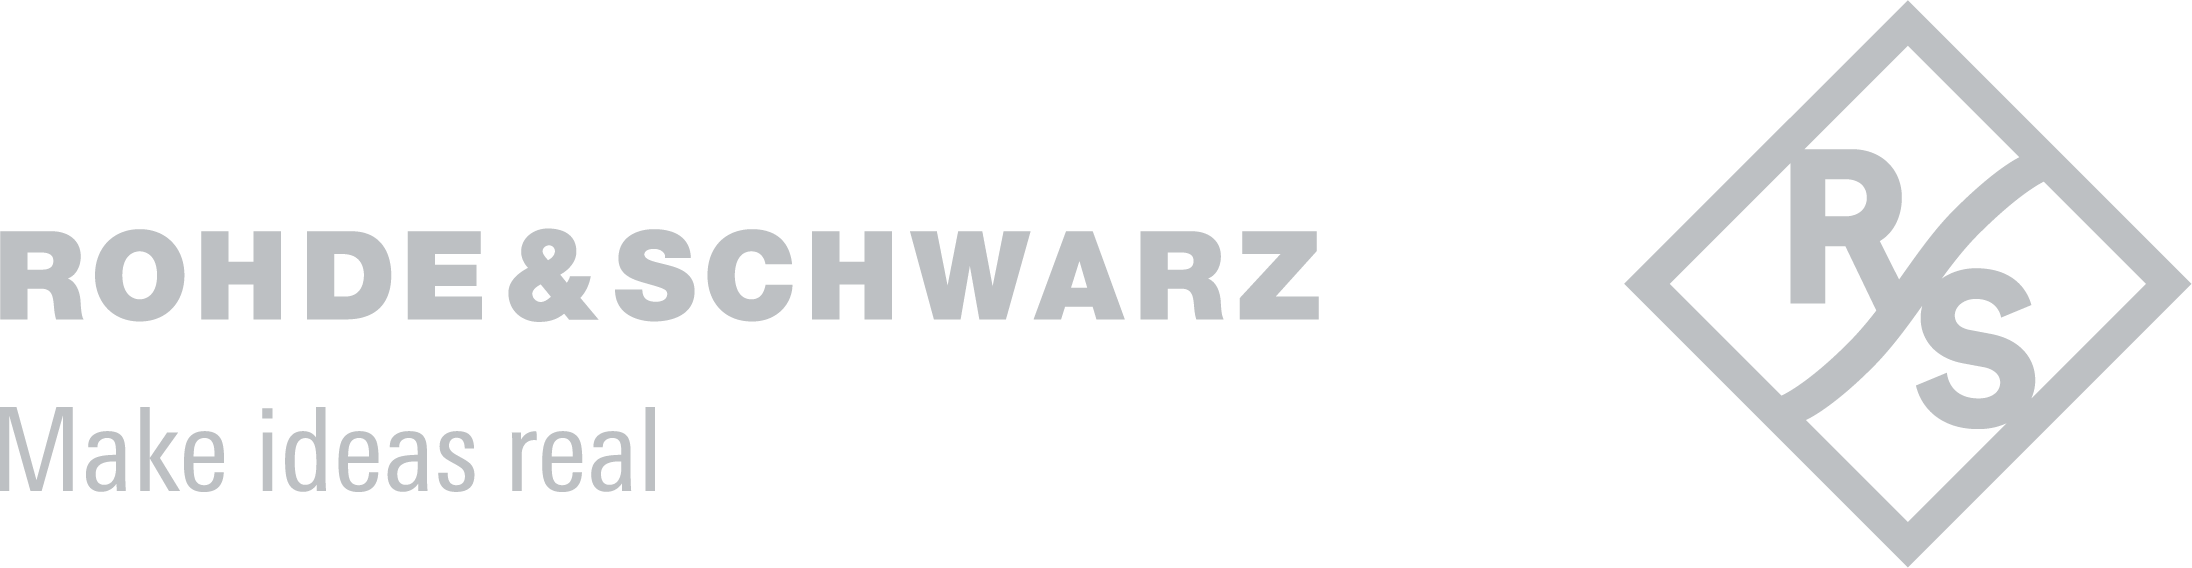 Rhode and Schwarz